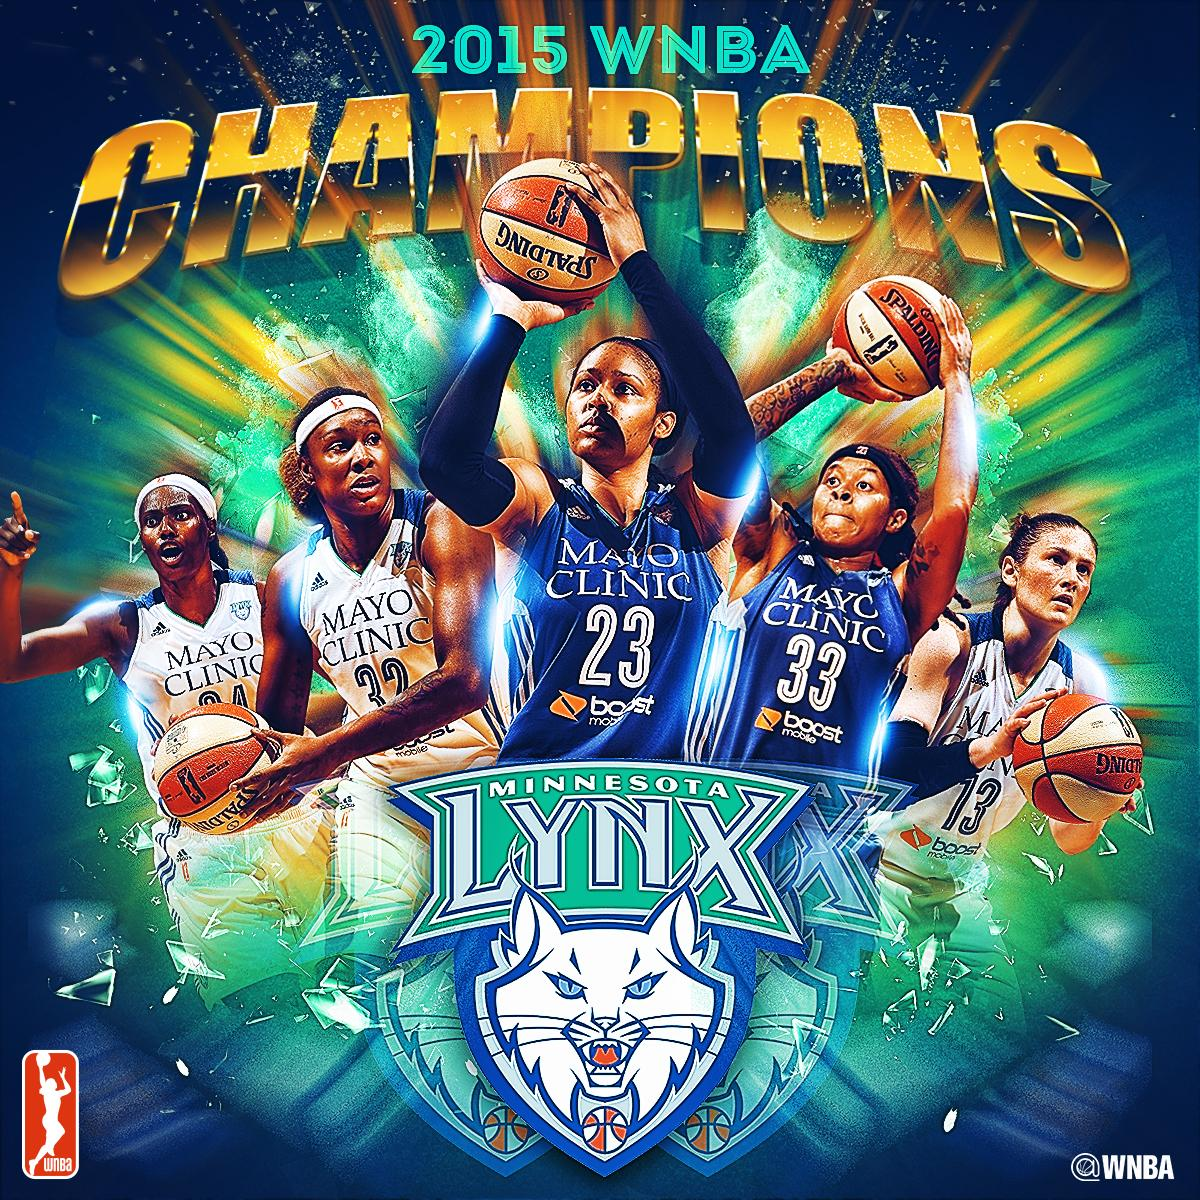 The @minnesotalynx are the 2015 WNBA champions! http://t.co/DRshk5BAF4